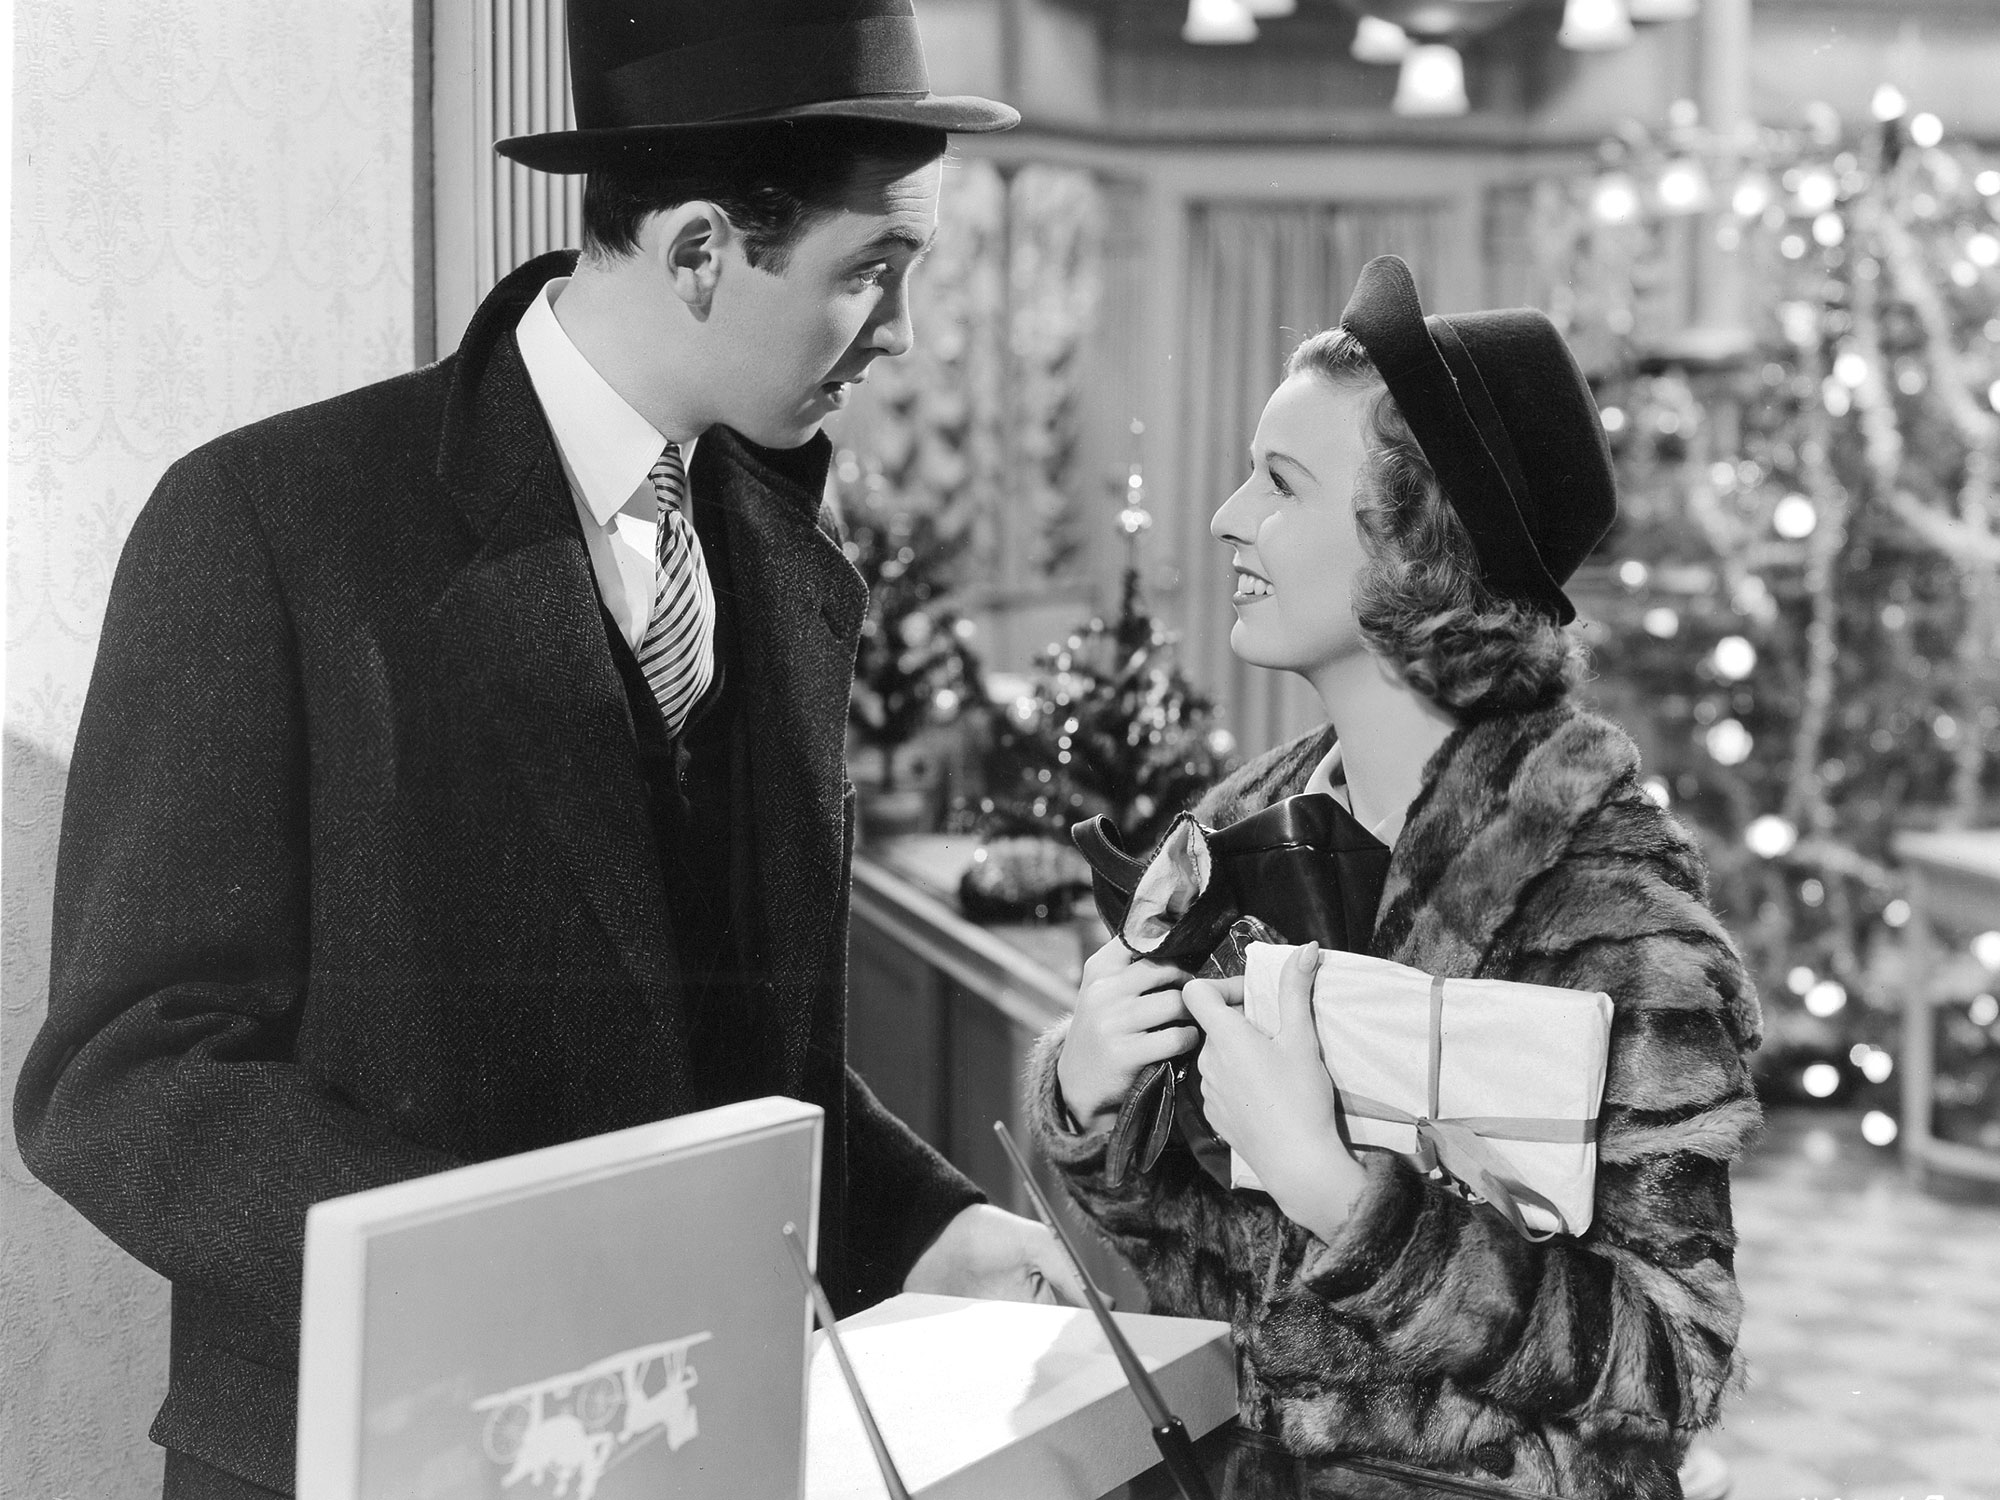 My favorite classic Christmas movies - Capturing Our Days